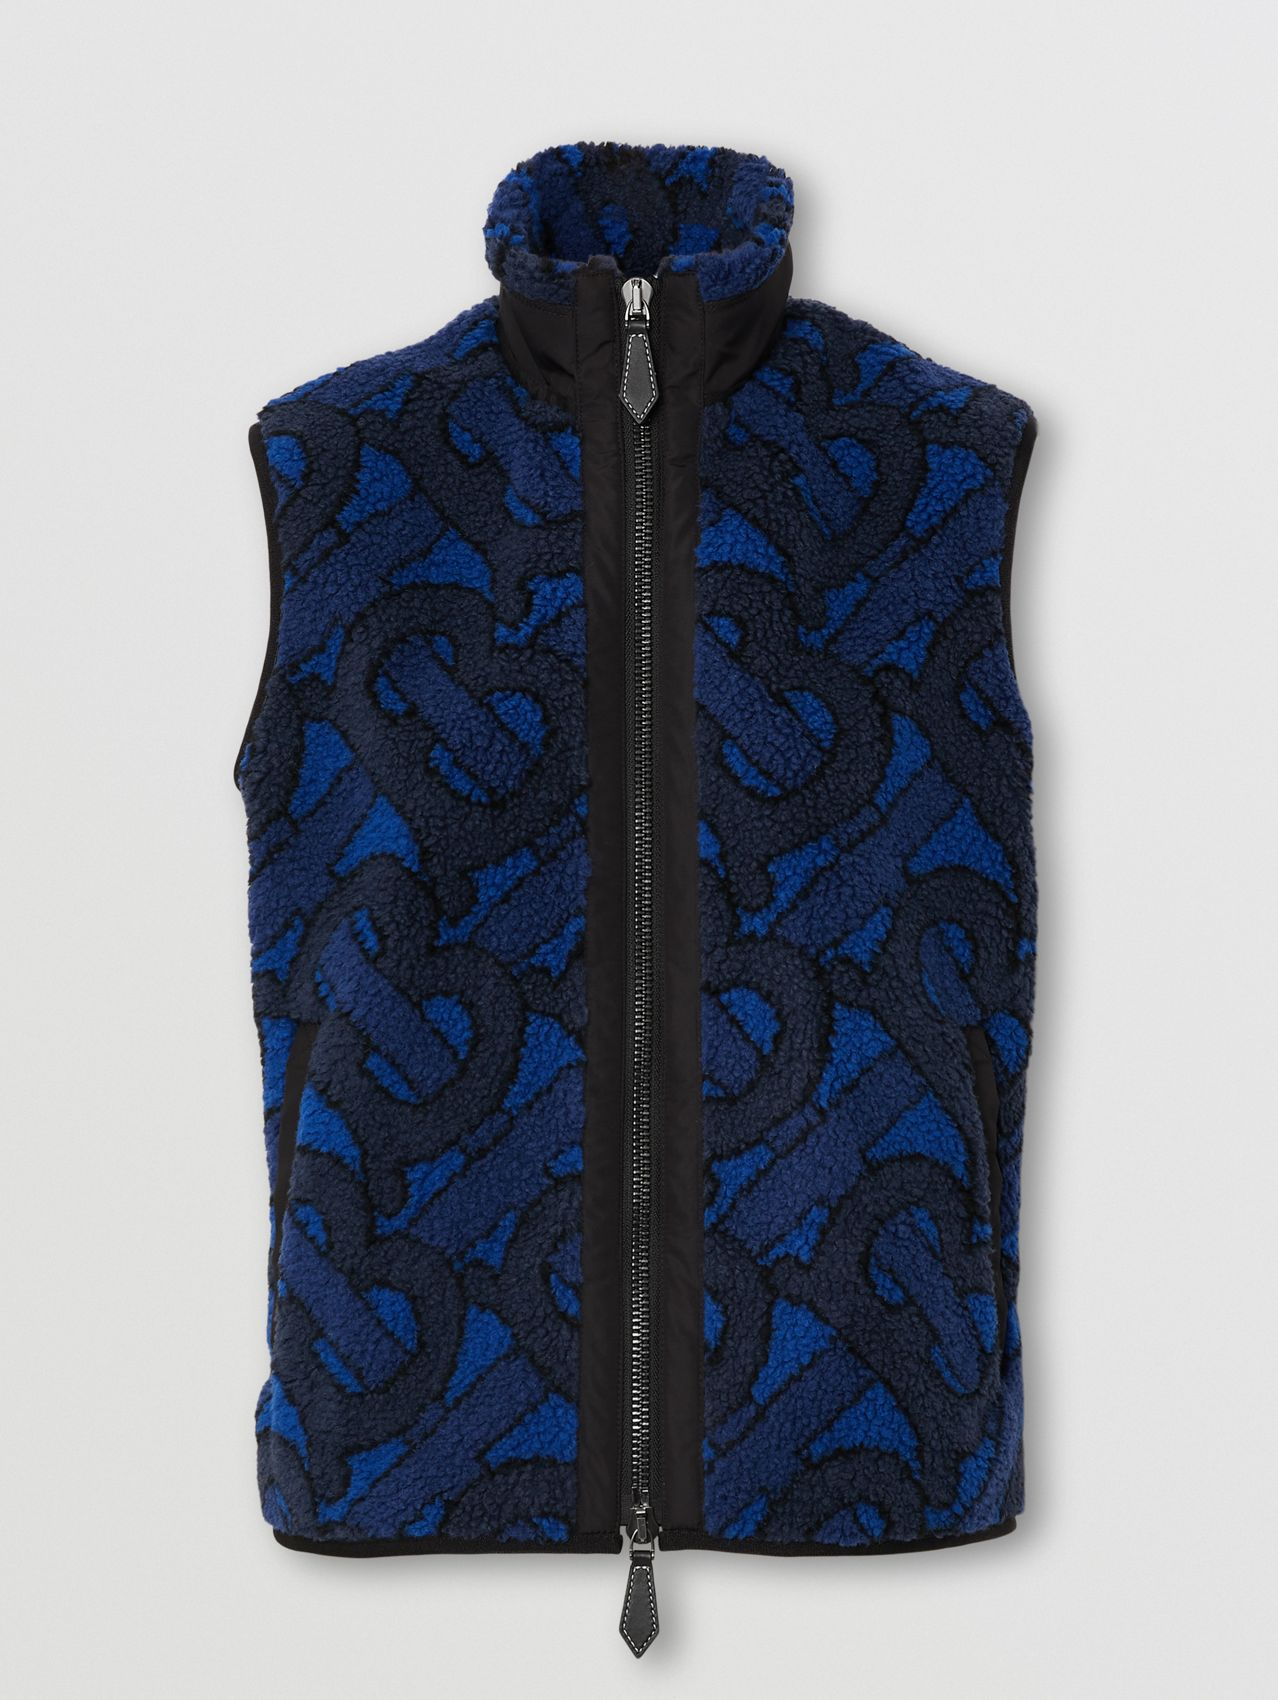 Monogram Fleece Jacquard Gilet in Navy